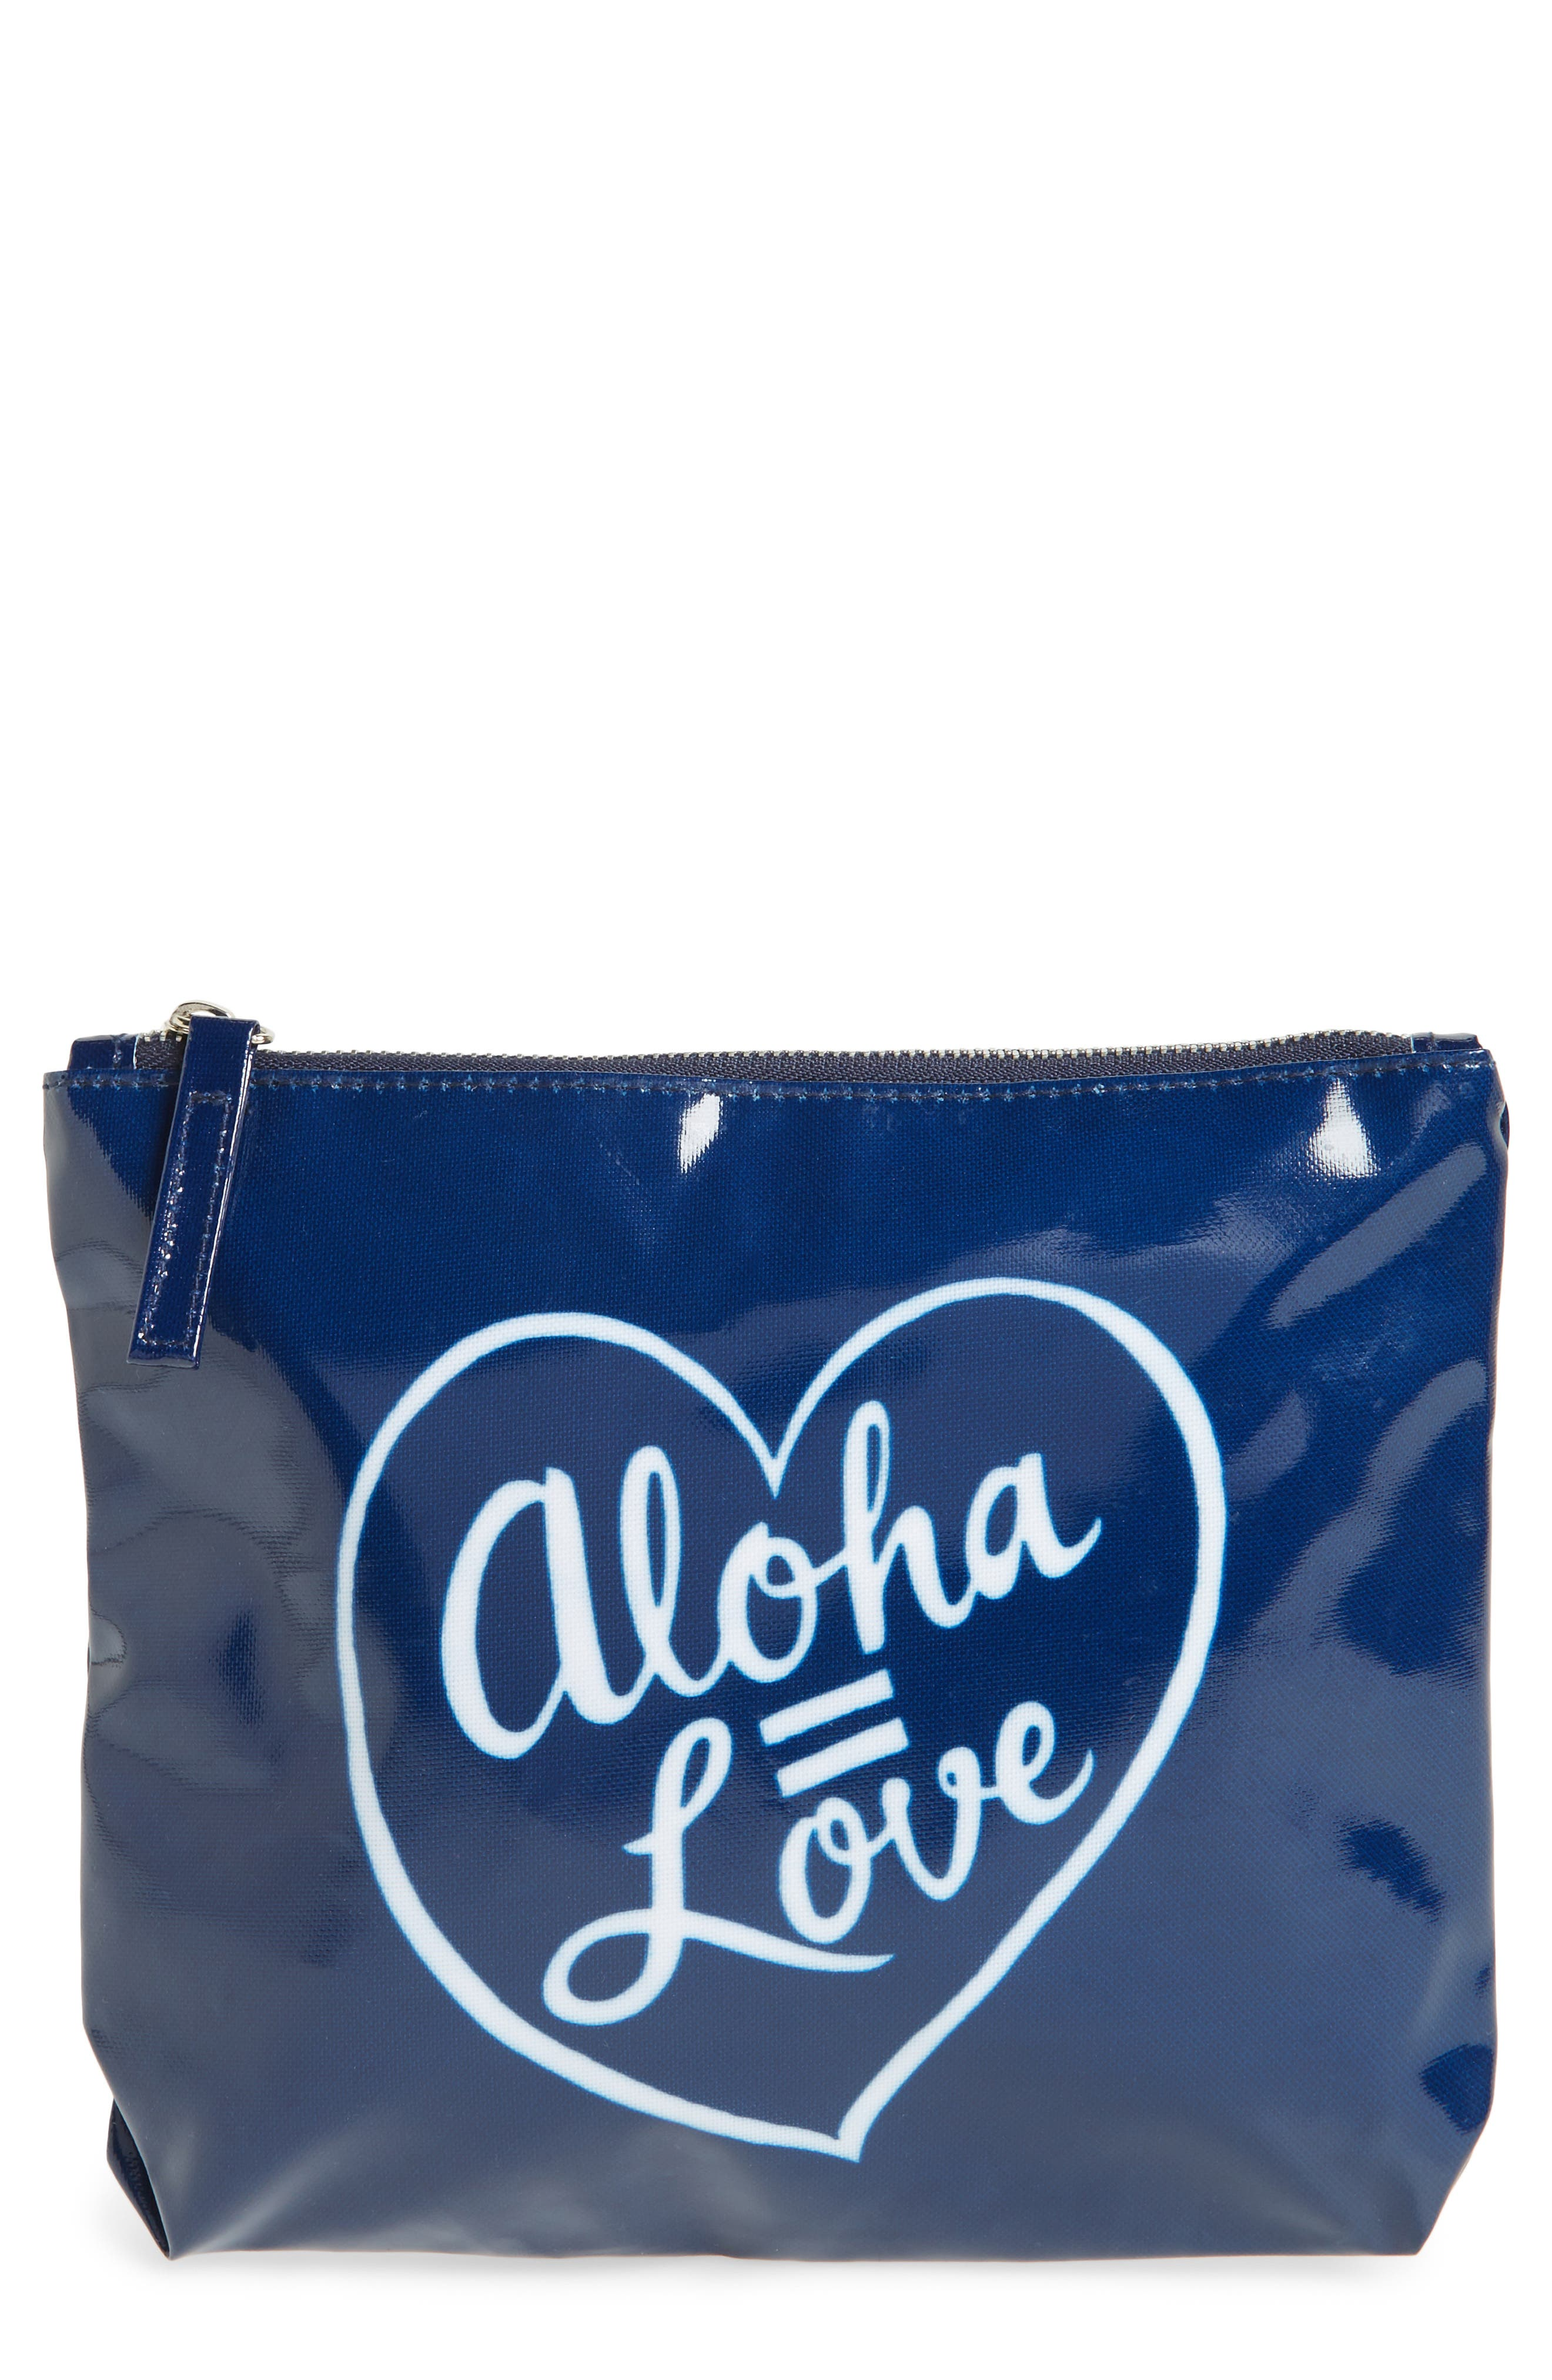 Aloha Love Pouch,                             Main thumbnail 1, color,                             Navy/ White